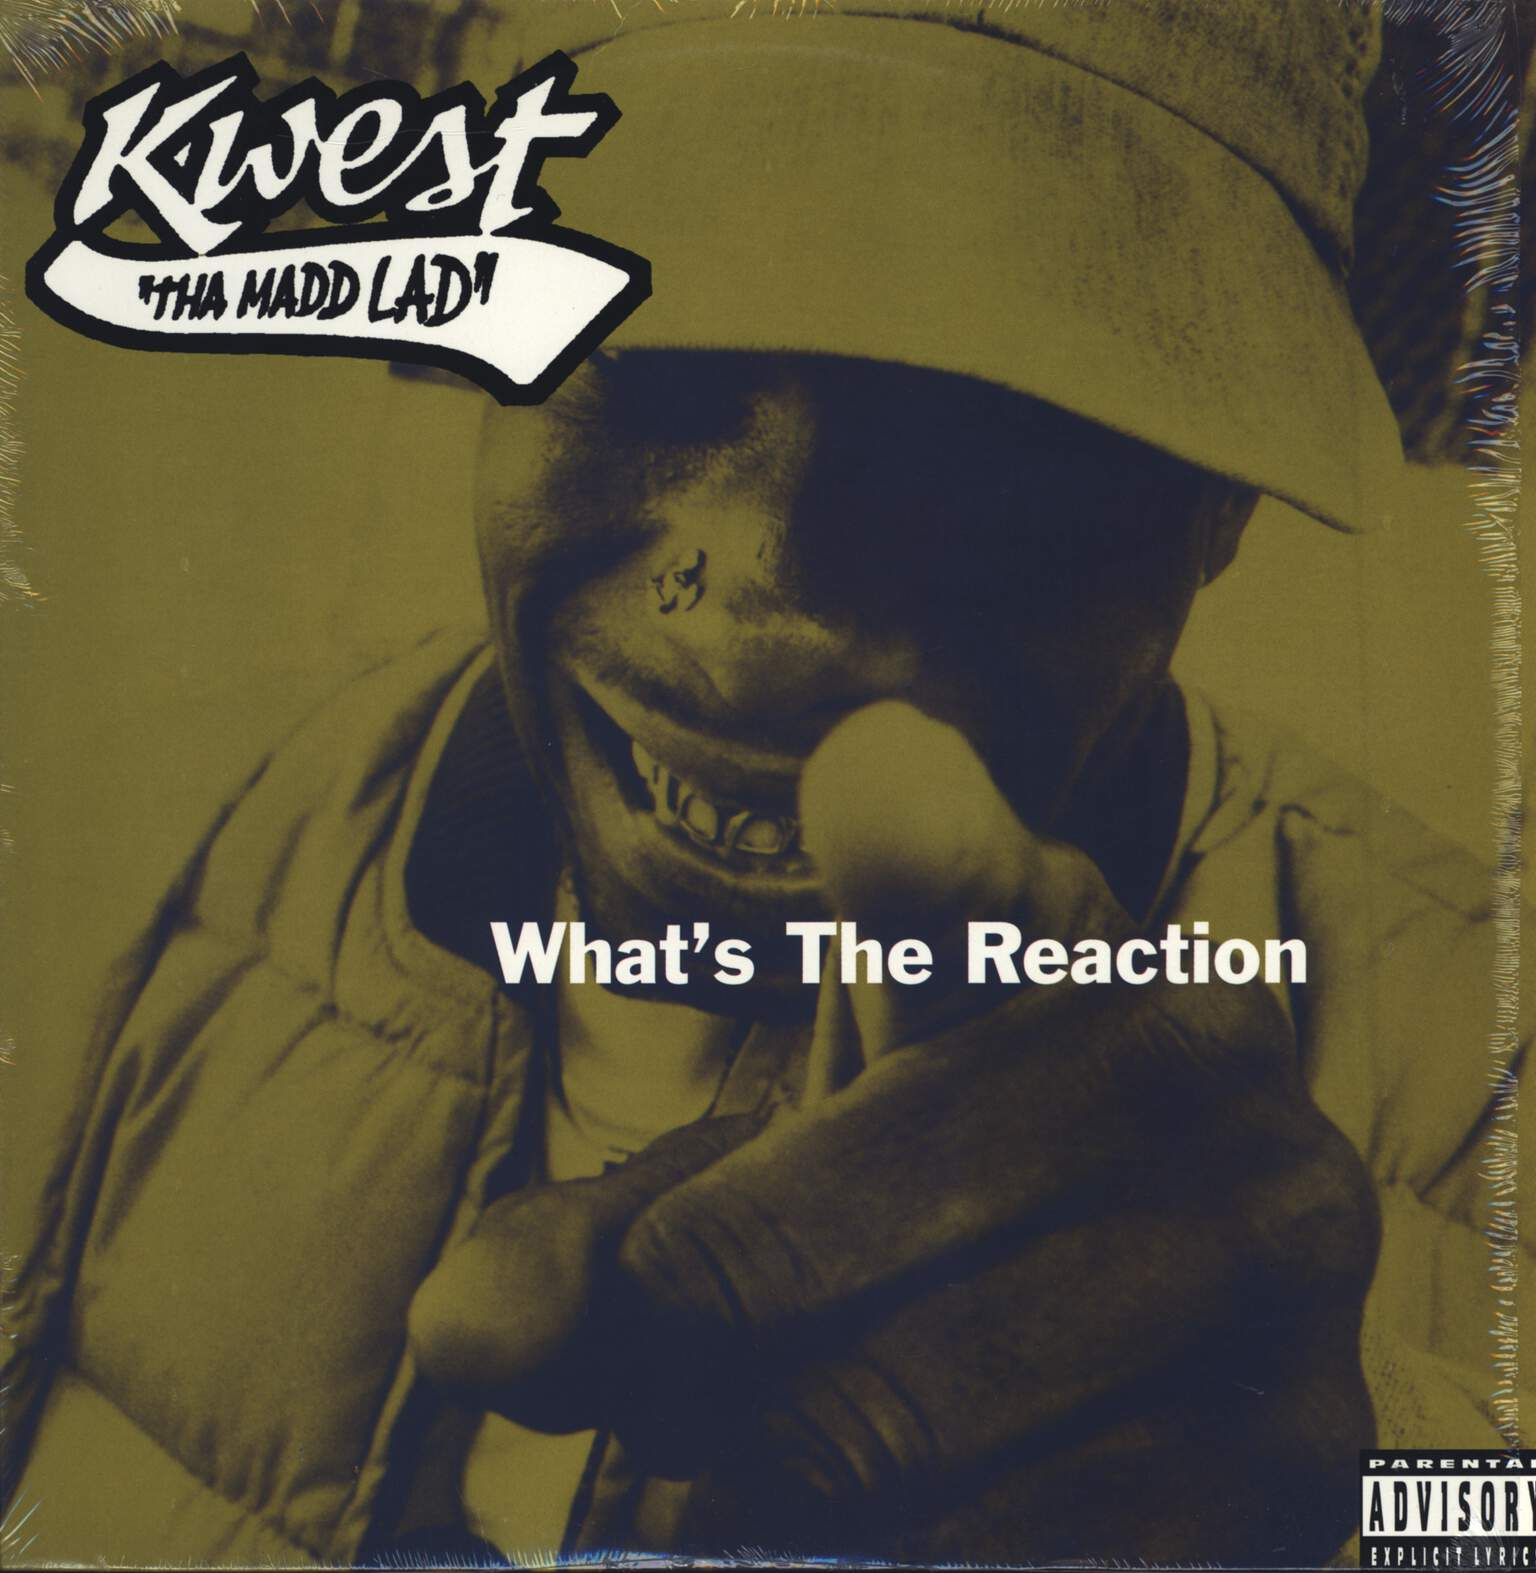 "Kwest Tha Madd Lad: What's The Reaction, 12"" Maxi Single (Vinyl)"